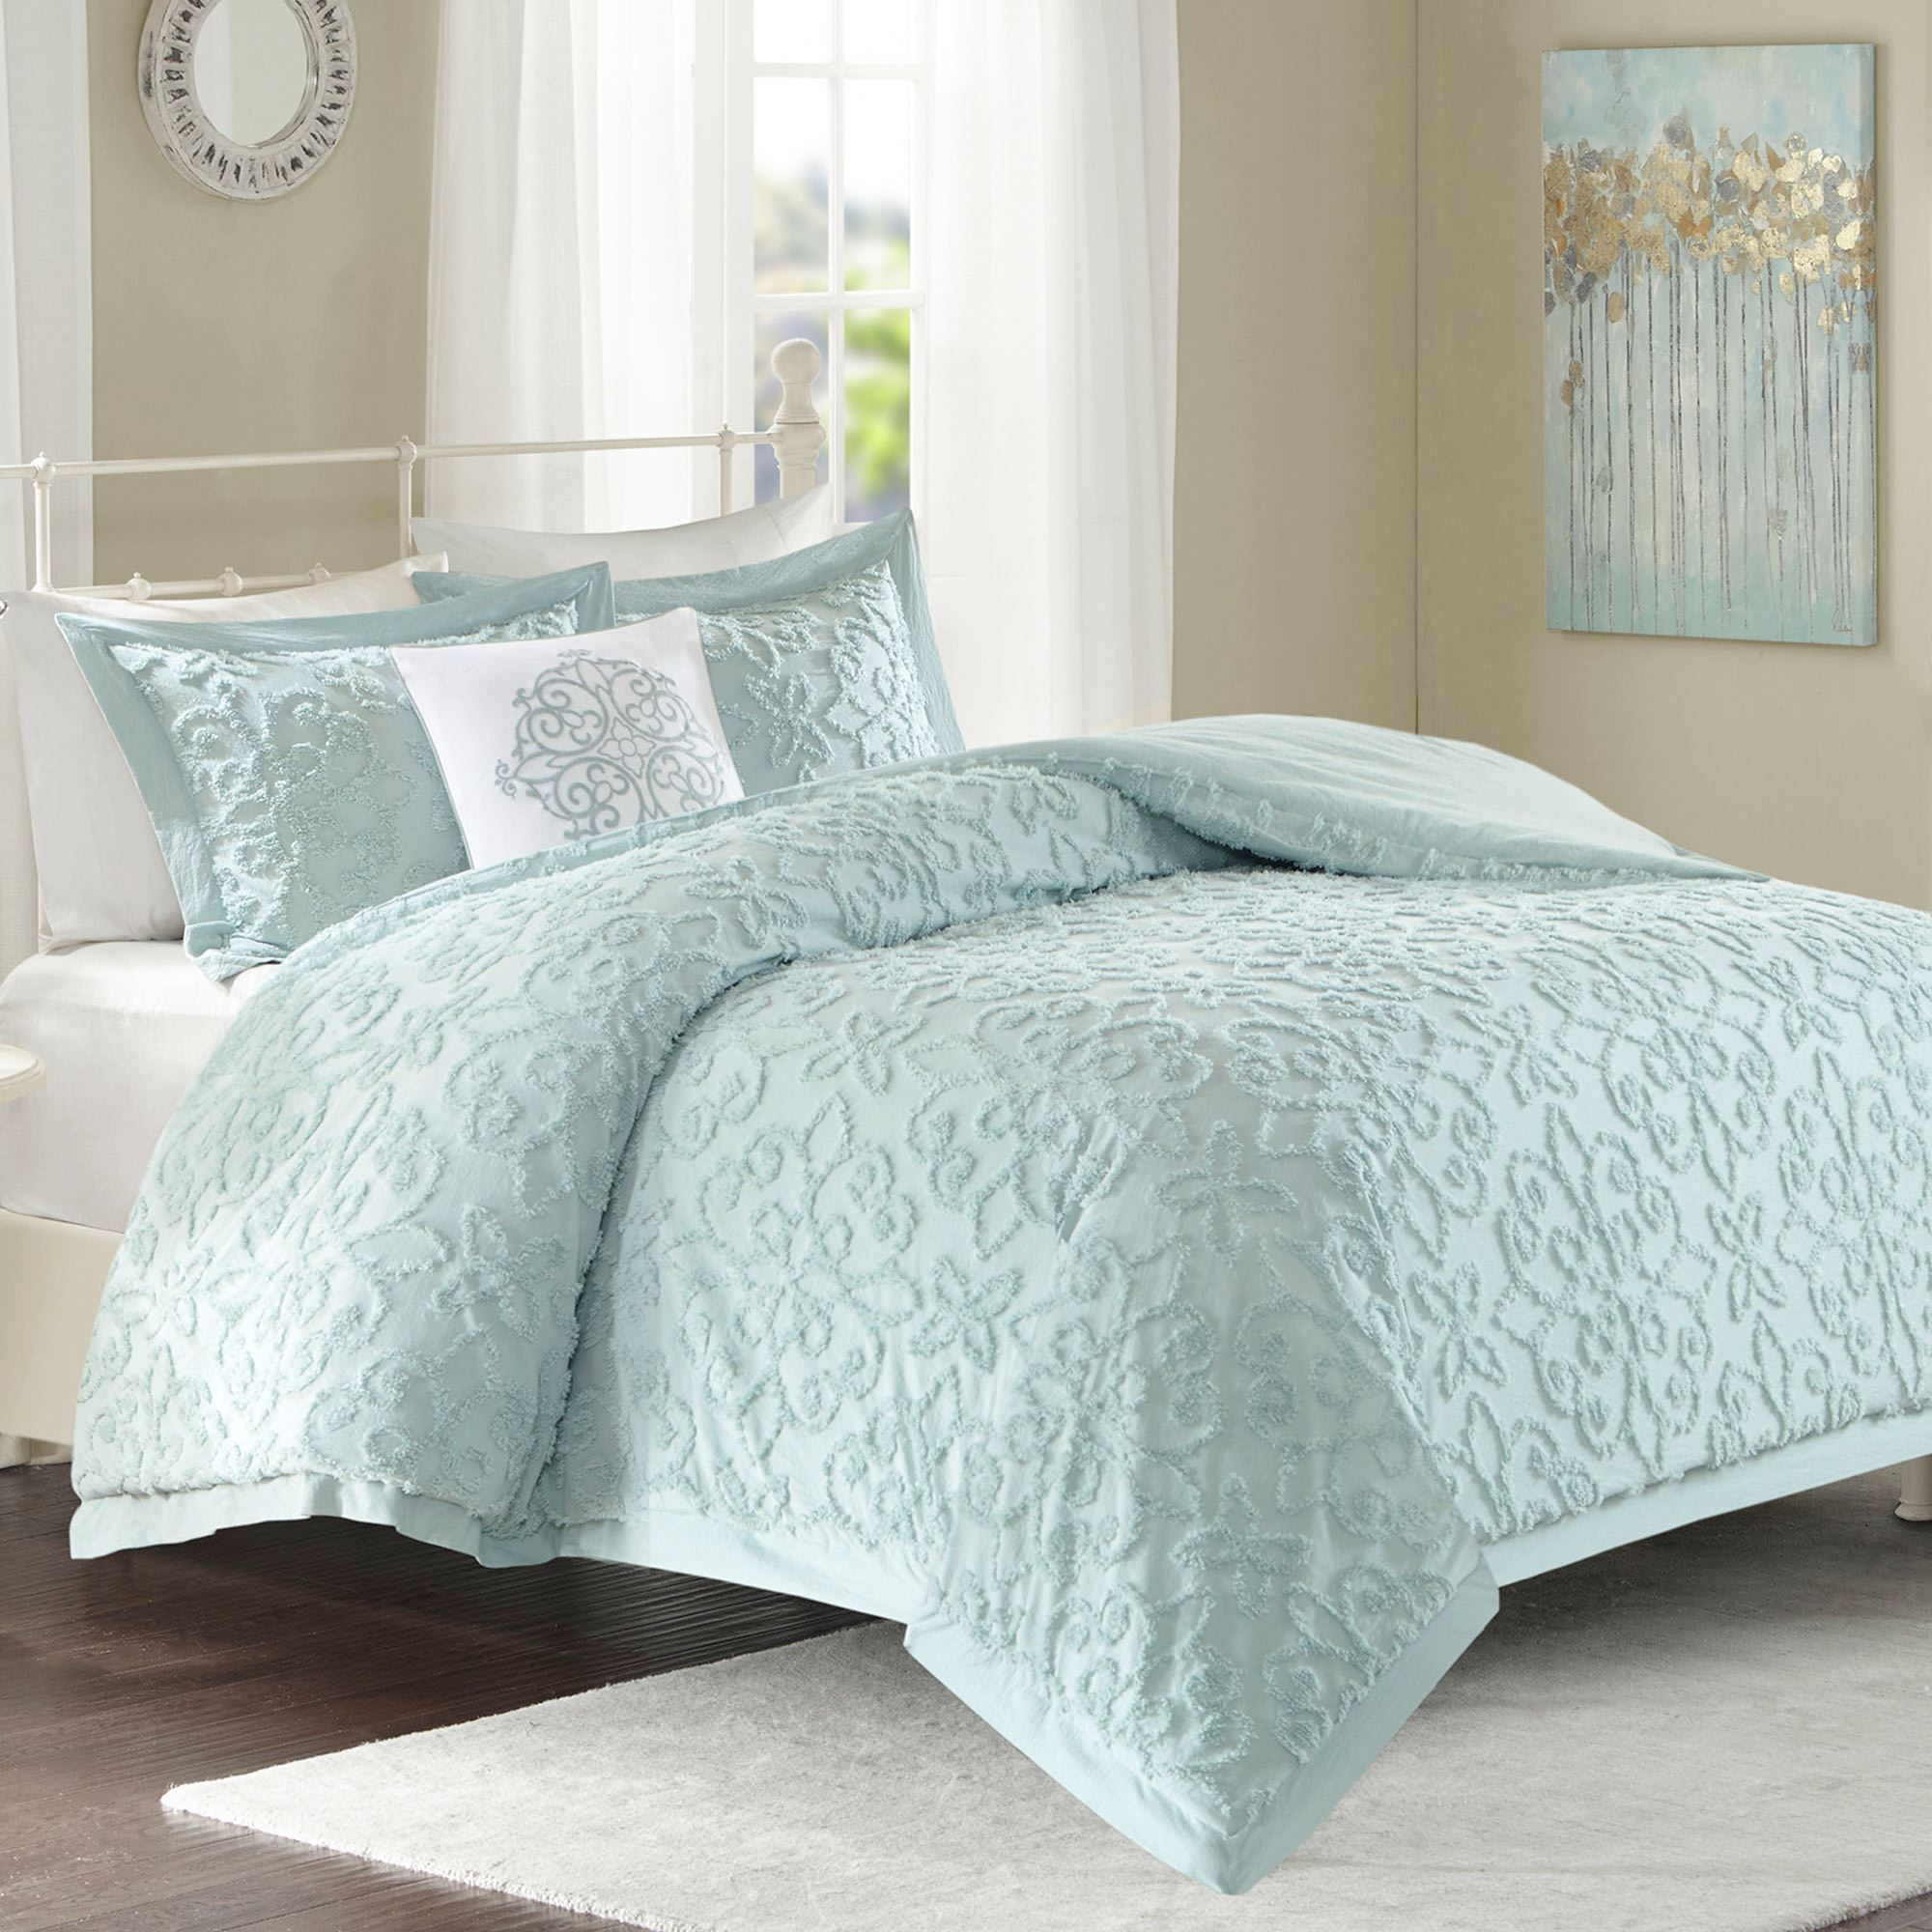 Lily Chenille Comforter Bed Set Pale Aqua. Click To Expand